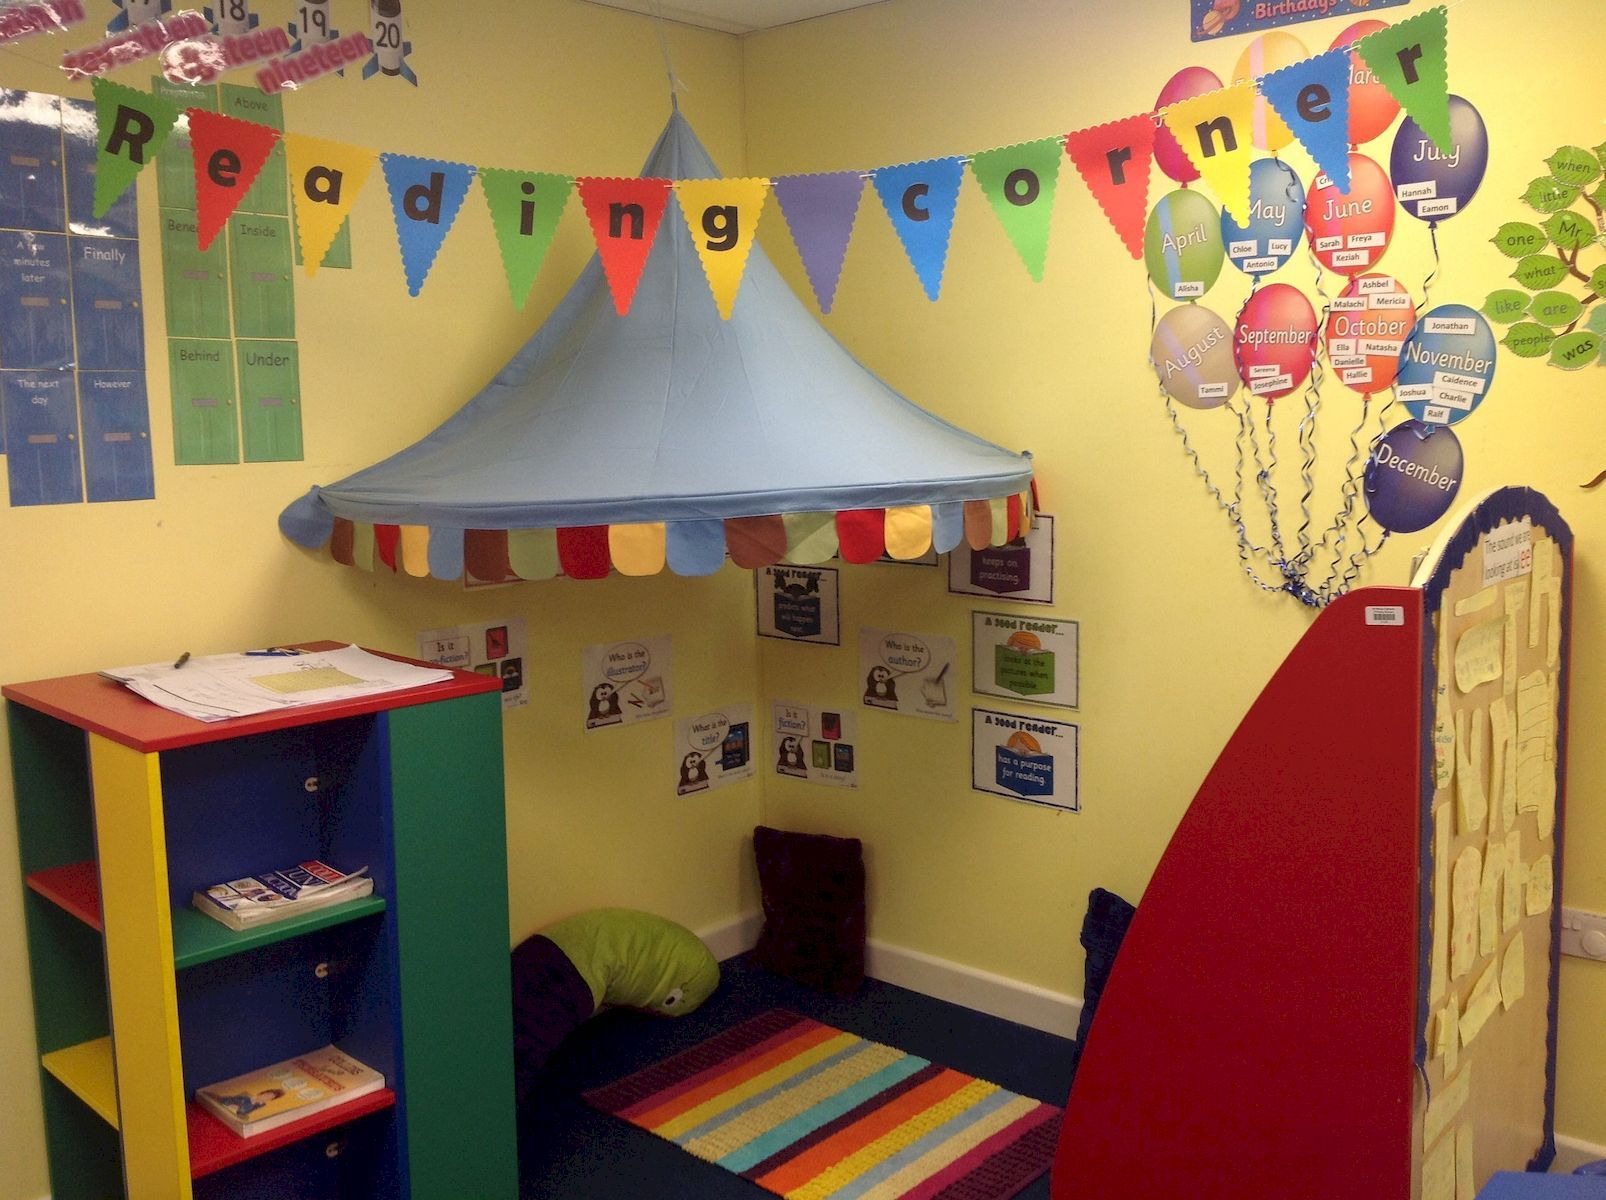 Awesome Reading Corners For Kids is part of Reading corner classroom, Classroom decor, Reading corner, Classroom decorations, Toddler classroom, Classroom - Making a cozy reading space for kids very important to enjoy and creates a magical ­experience for everyone